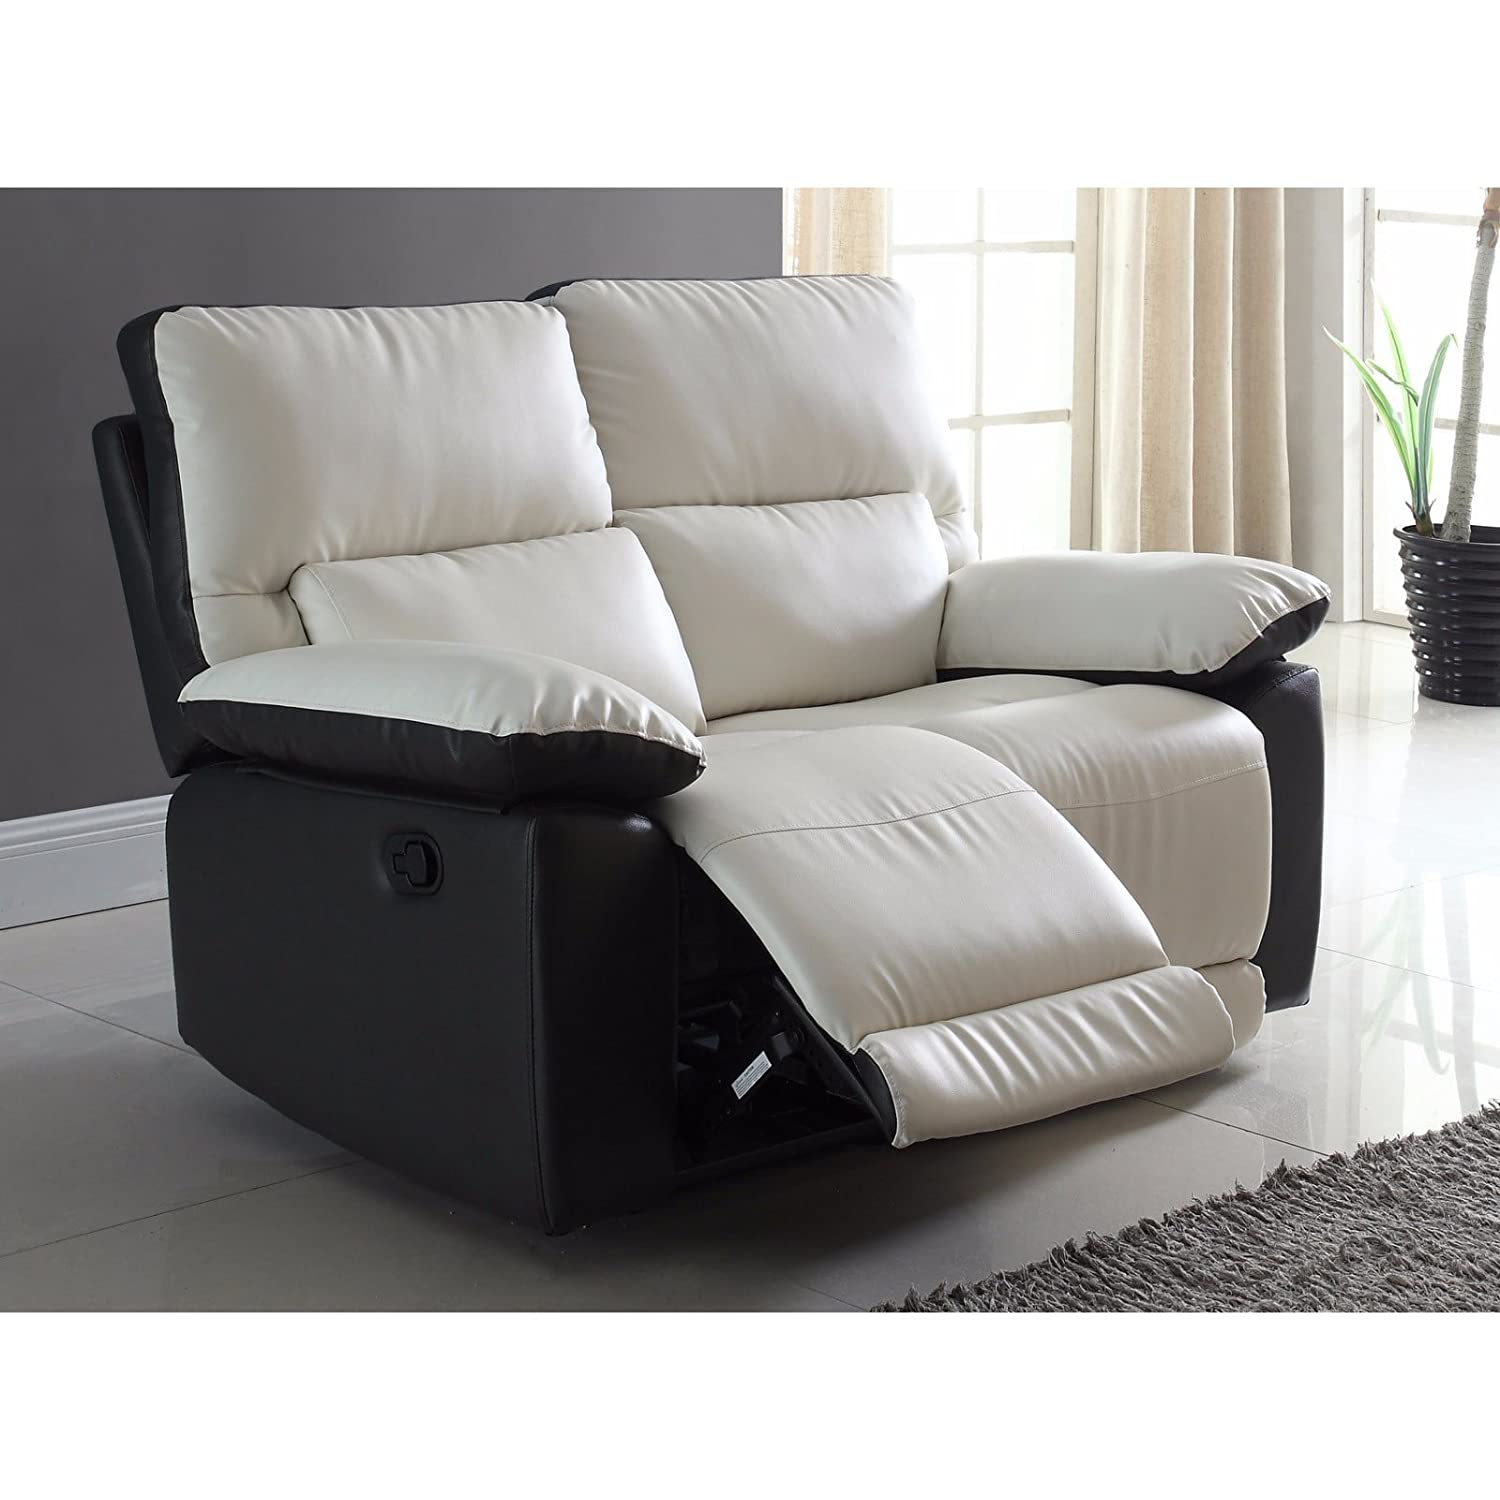 Best Recliner Reviews and Buying Guide 6